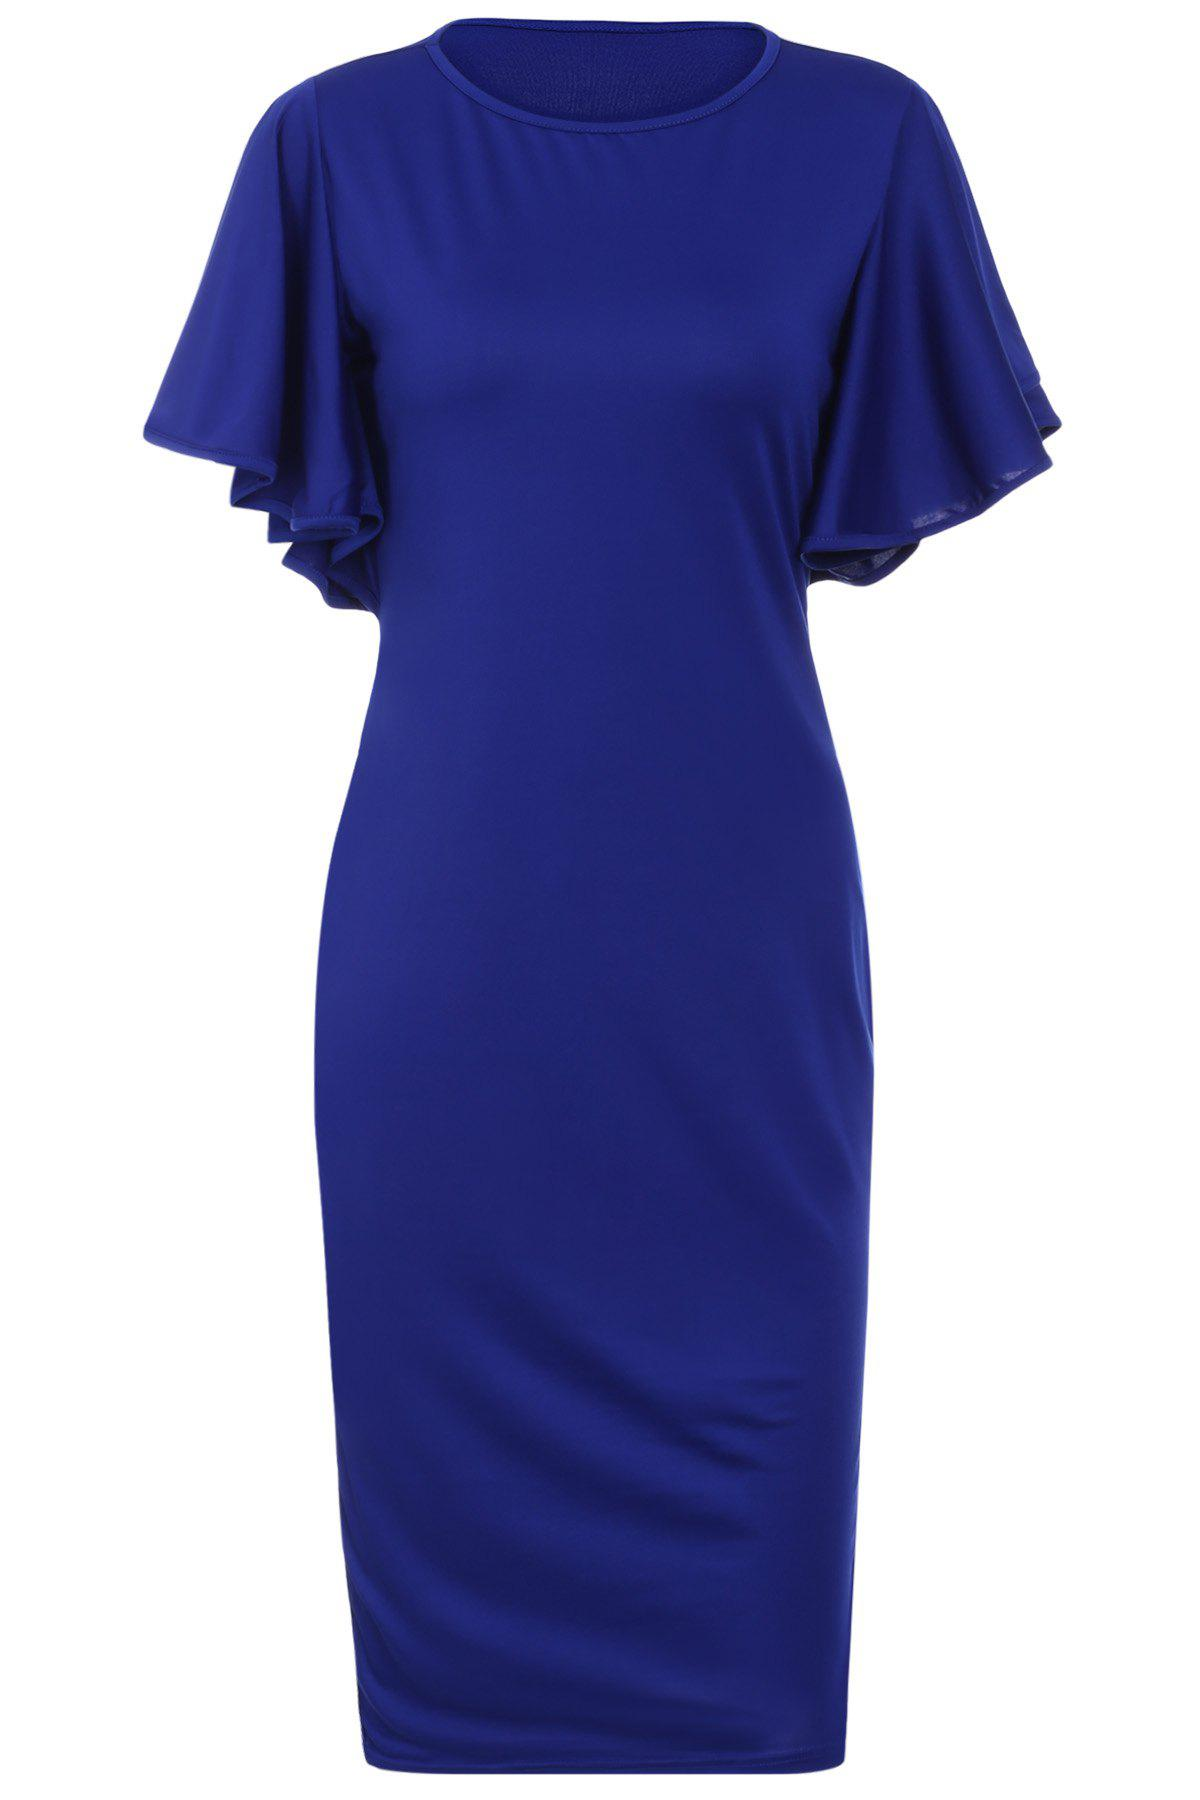 Elegant Jewel Neck Solid Color Butterfly Sleeve Bodycon Midi Dress For Women - S BLUE